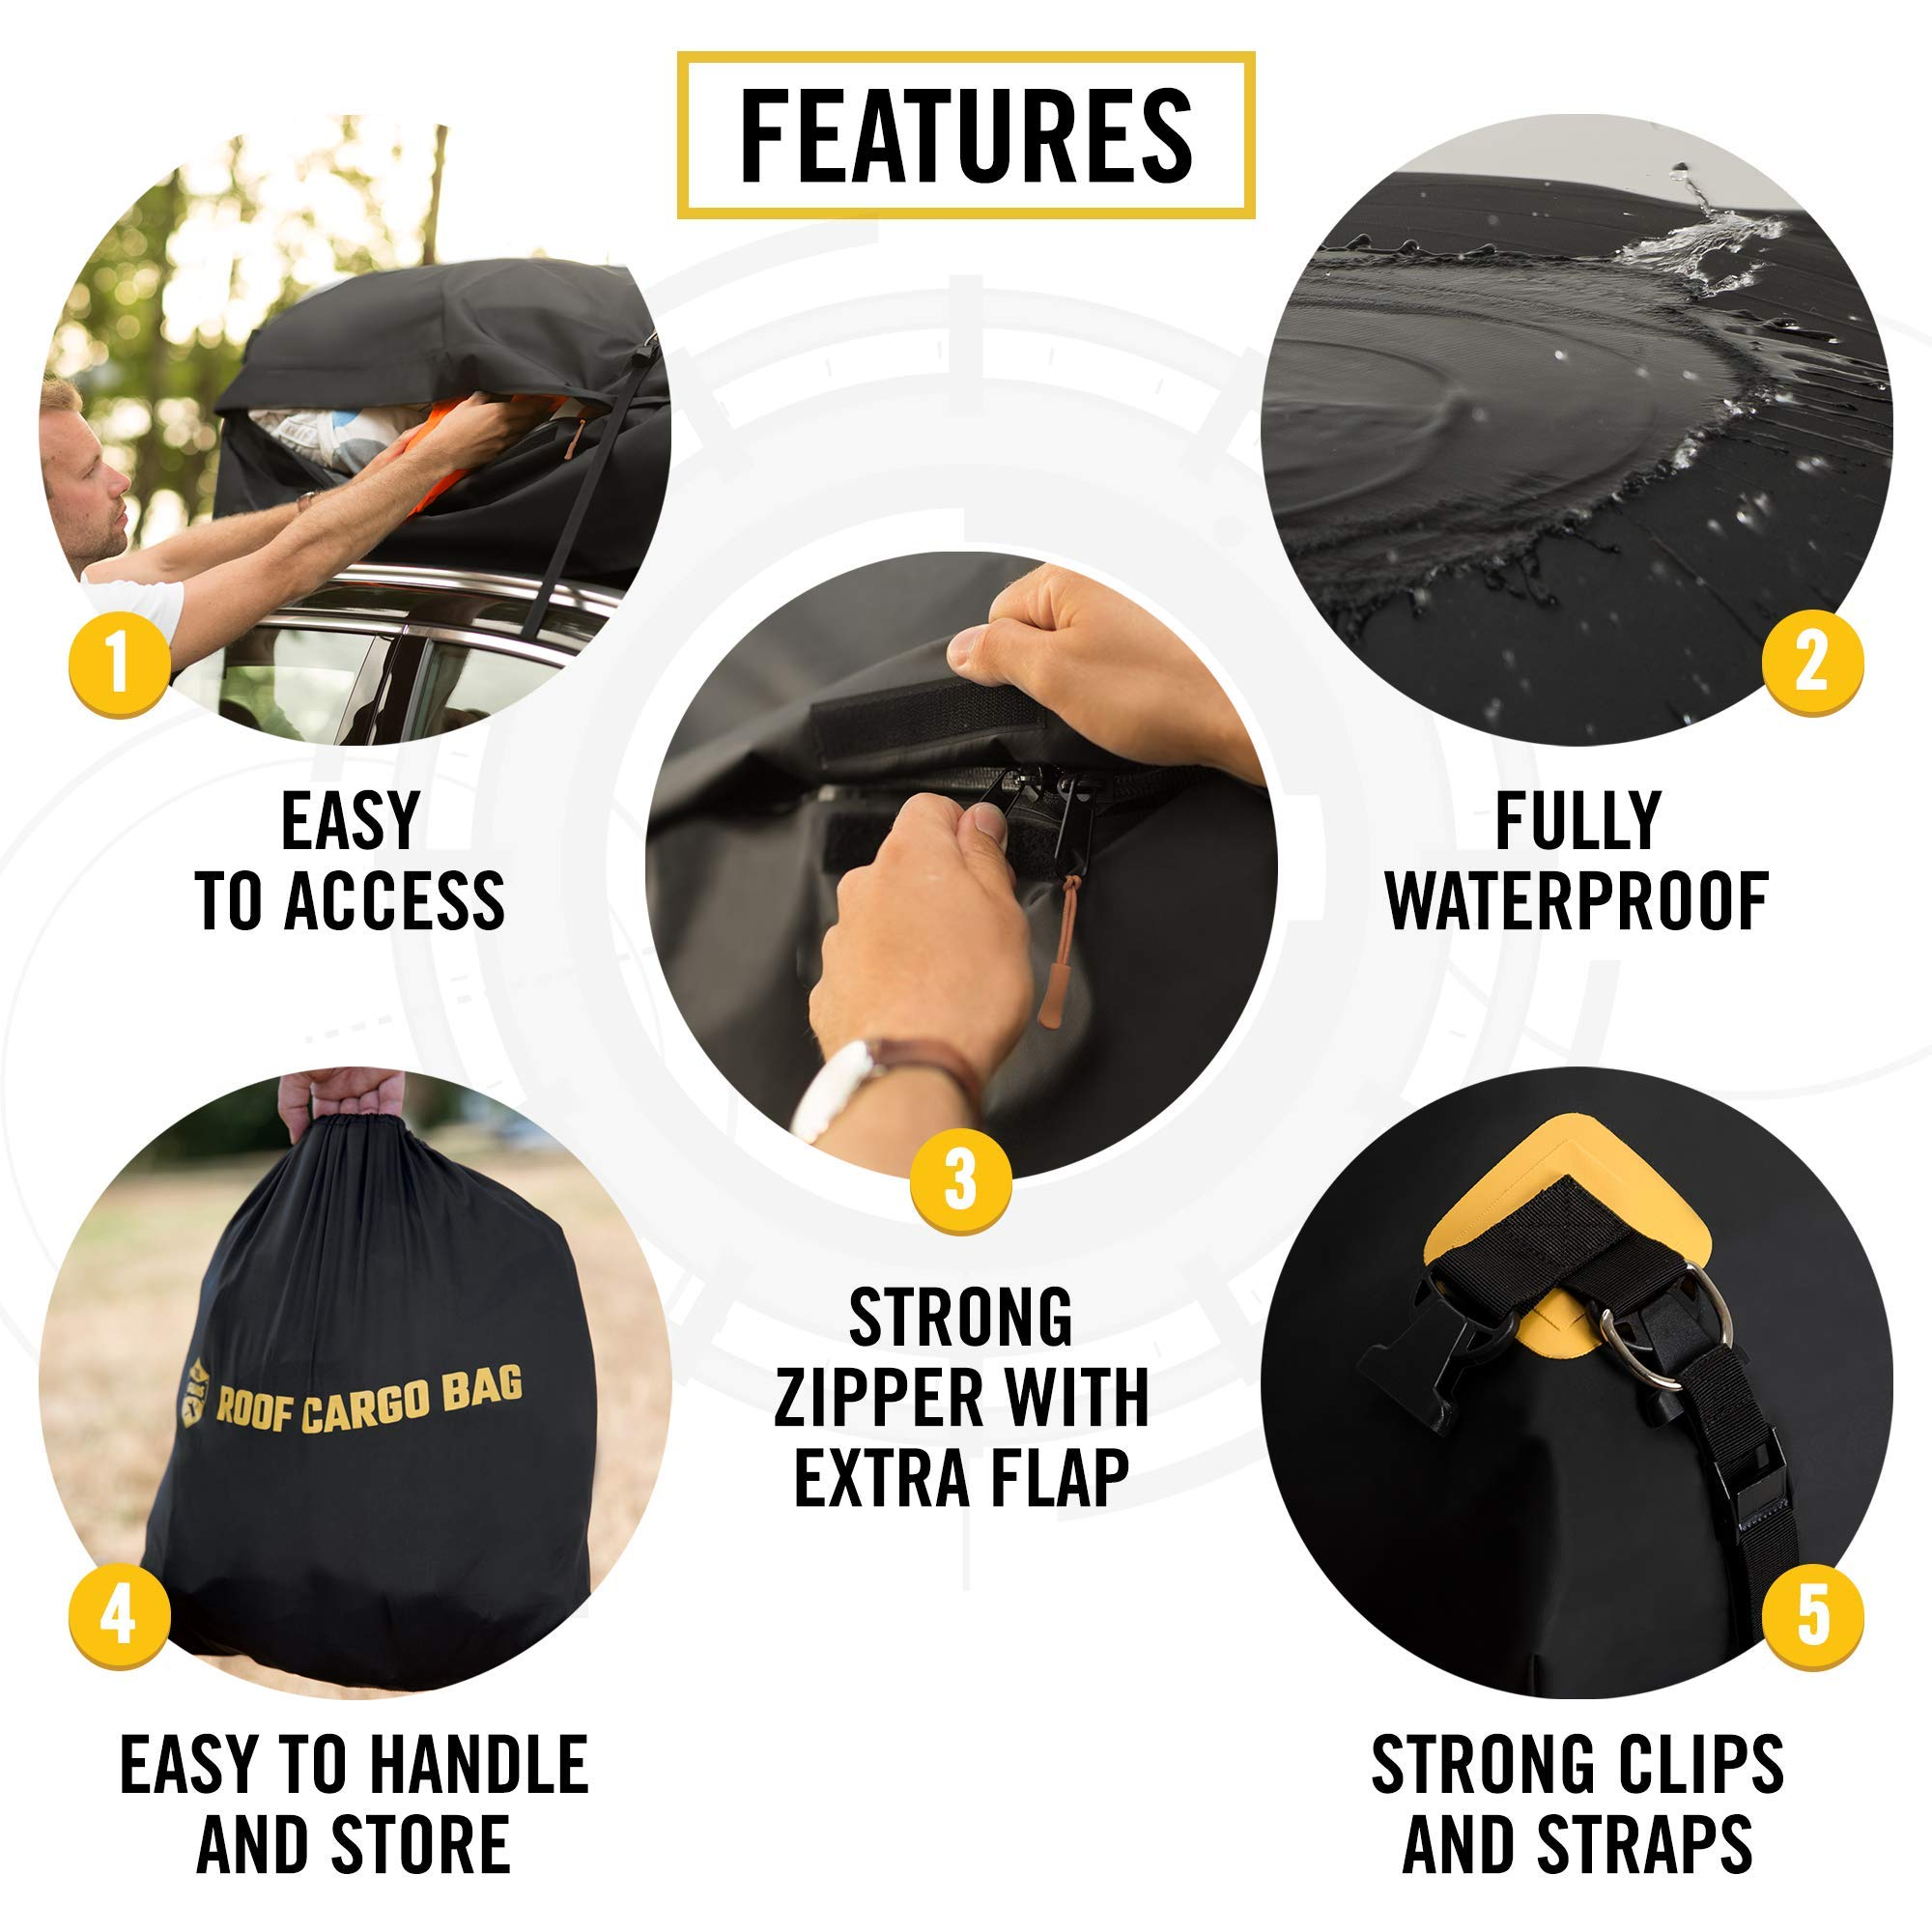 Car Top Carrier Roof Bag + Protective Mat - 100% Waterproof & Coated Zippers 15 Cubic ft - for Cars with or Without Racks by ToolGuards (Image #4)